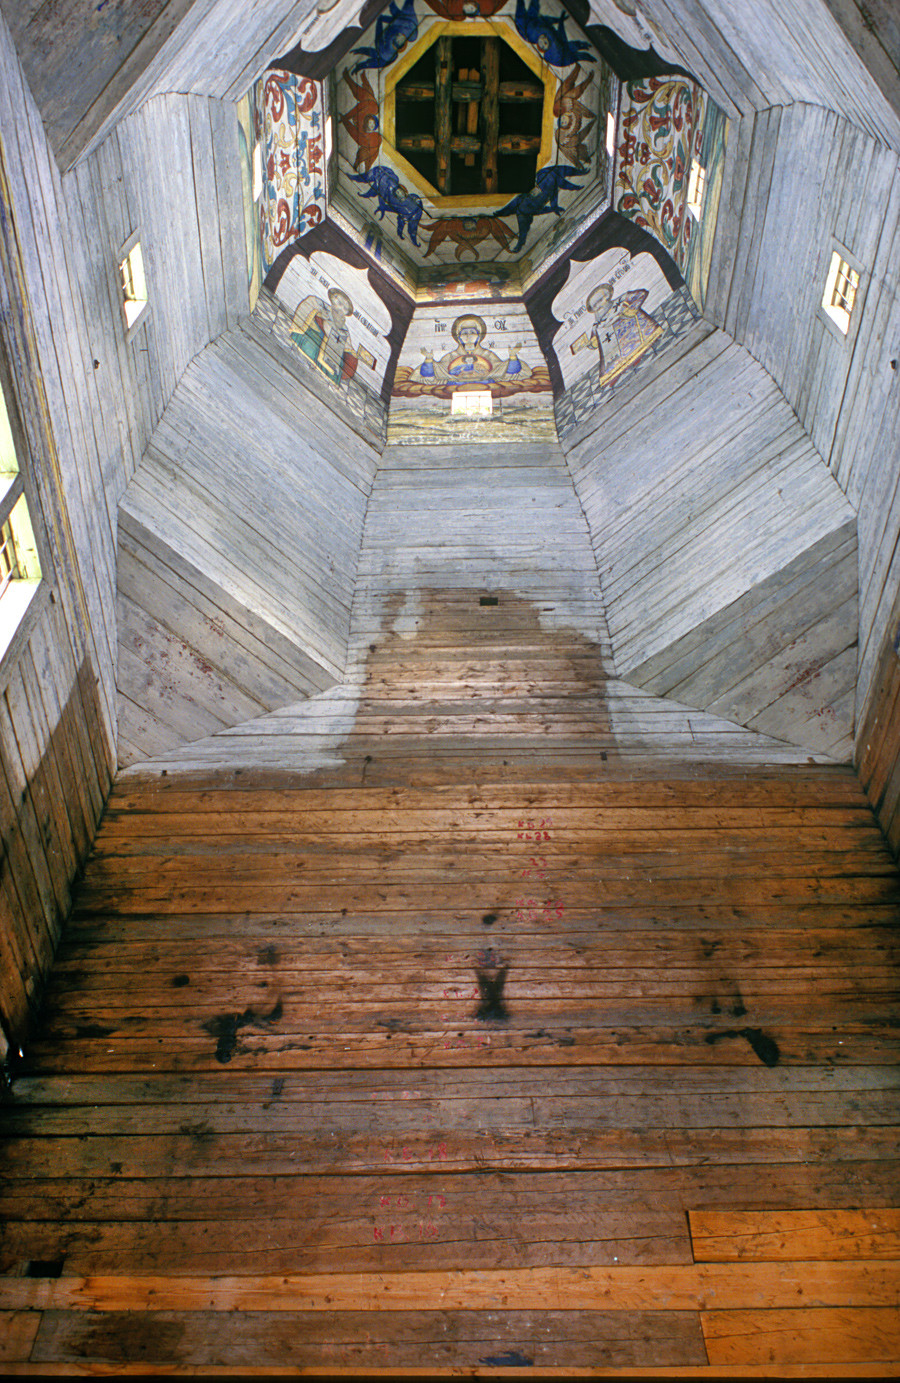 Church of the Tikhvin Icon (Old Church of the Ascension). Interior, view of tower and east wall with outline of lost icon screen. Aug. 18, 2006.